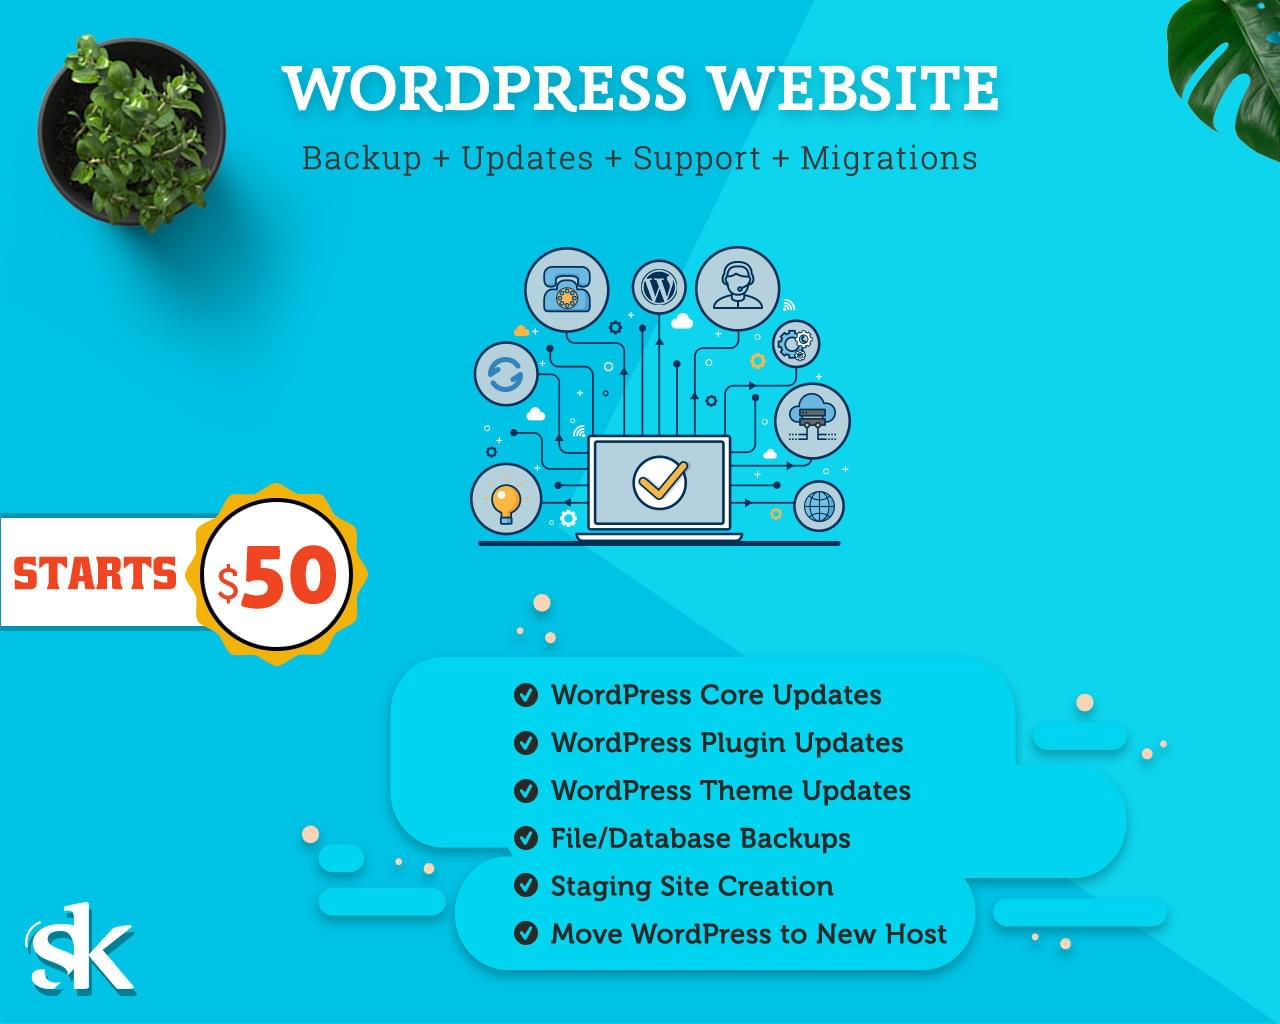 WordPress Website Backup + Updates + Support + Migrations by SK-Web-Solutions - 112983